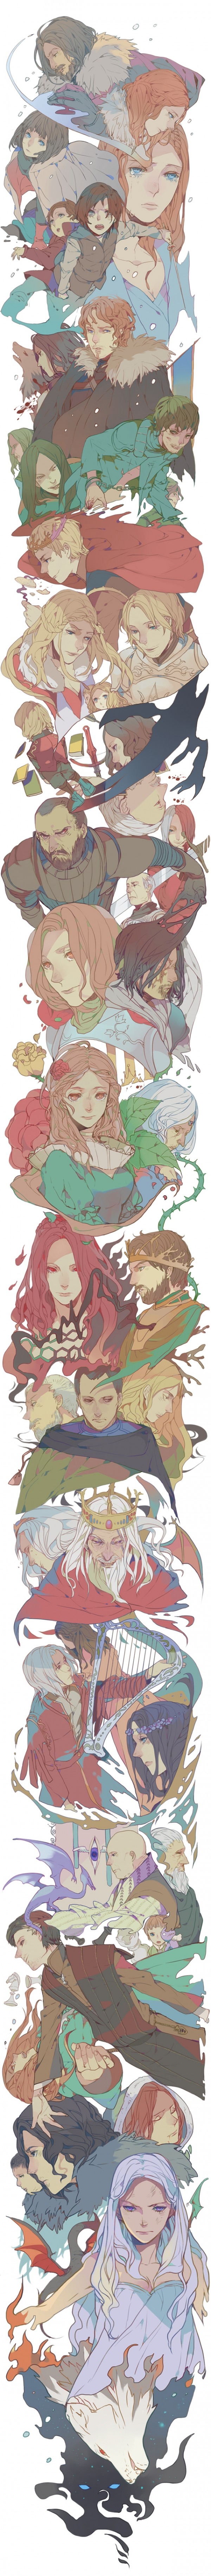 Song Of Ice And Fire by Takeshi Kiyoko - Game of Thrones Art